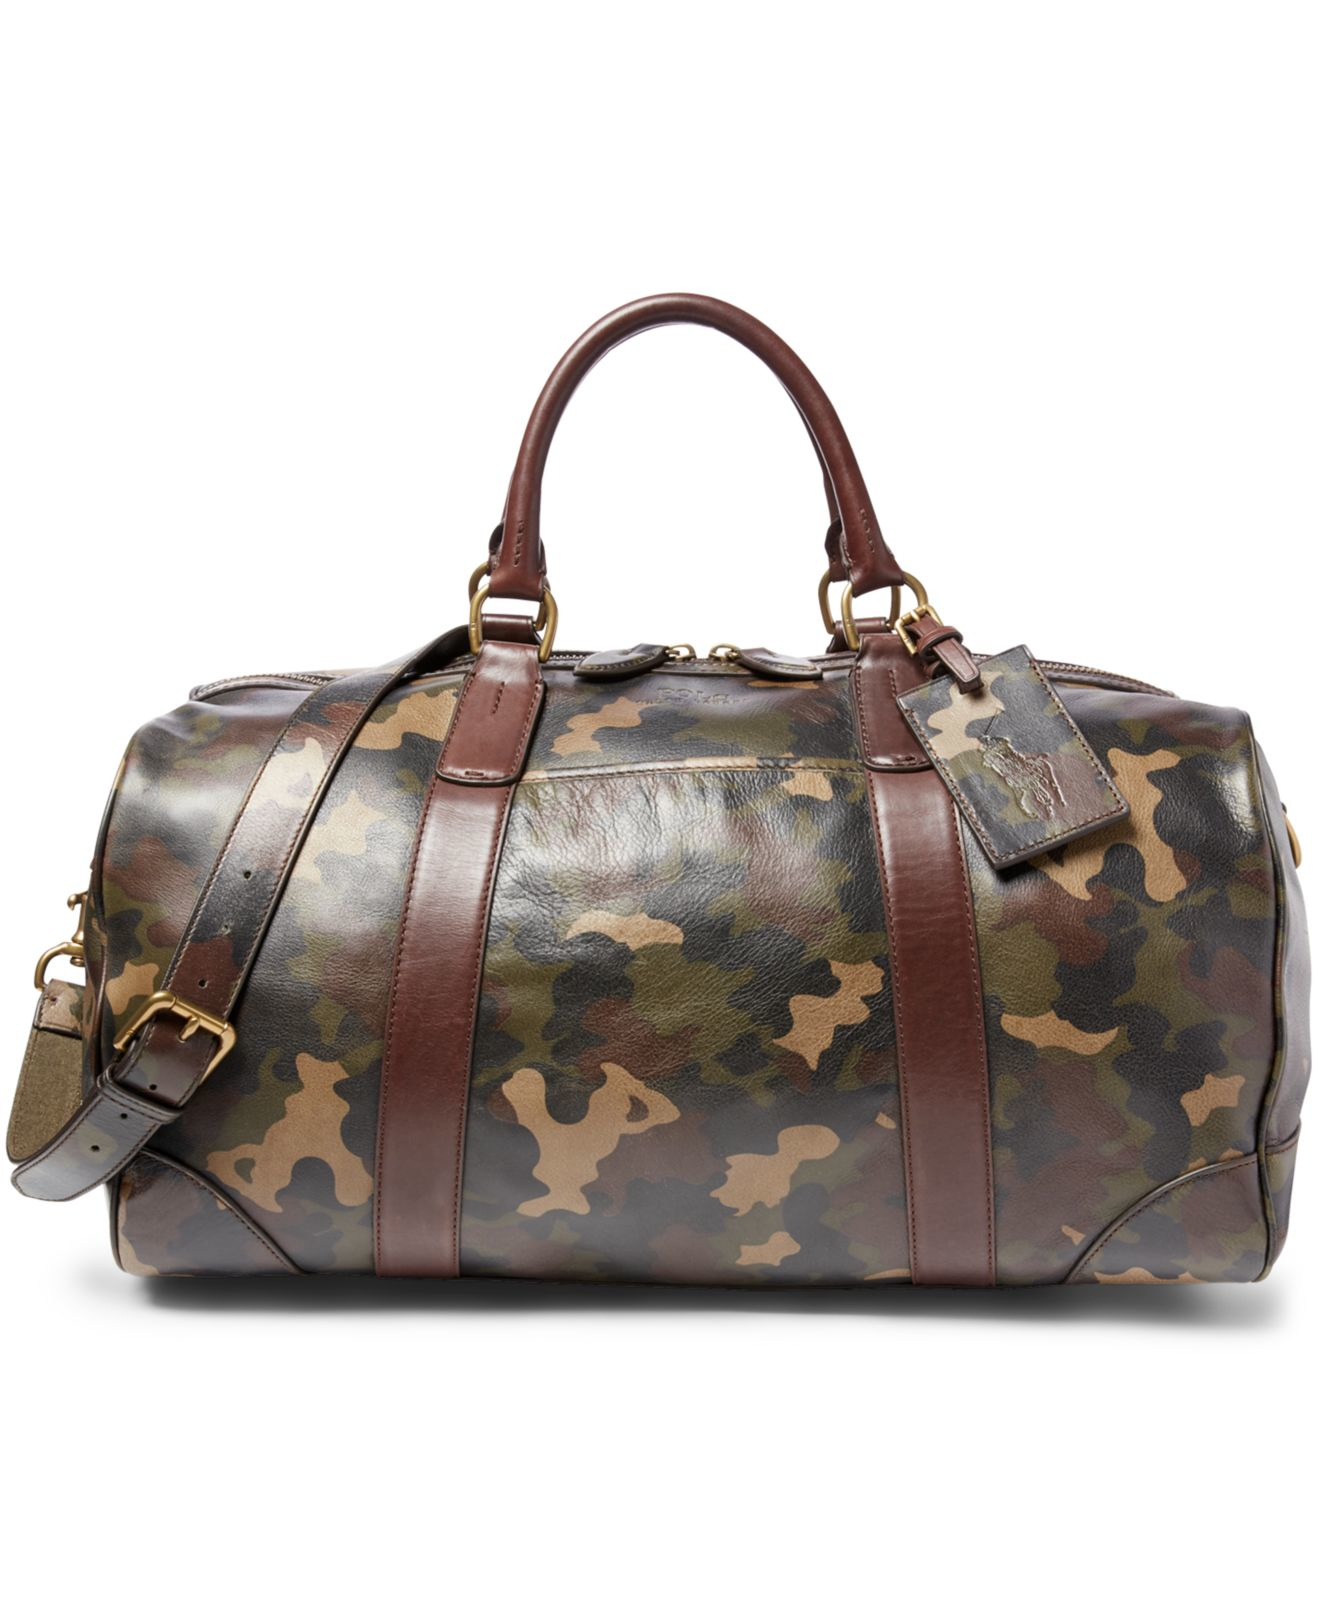 Polo Ralph Lauren Camouflage Print Leather Duffel Bag In